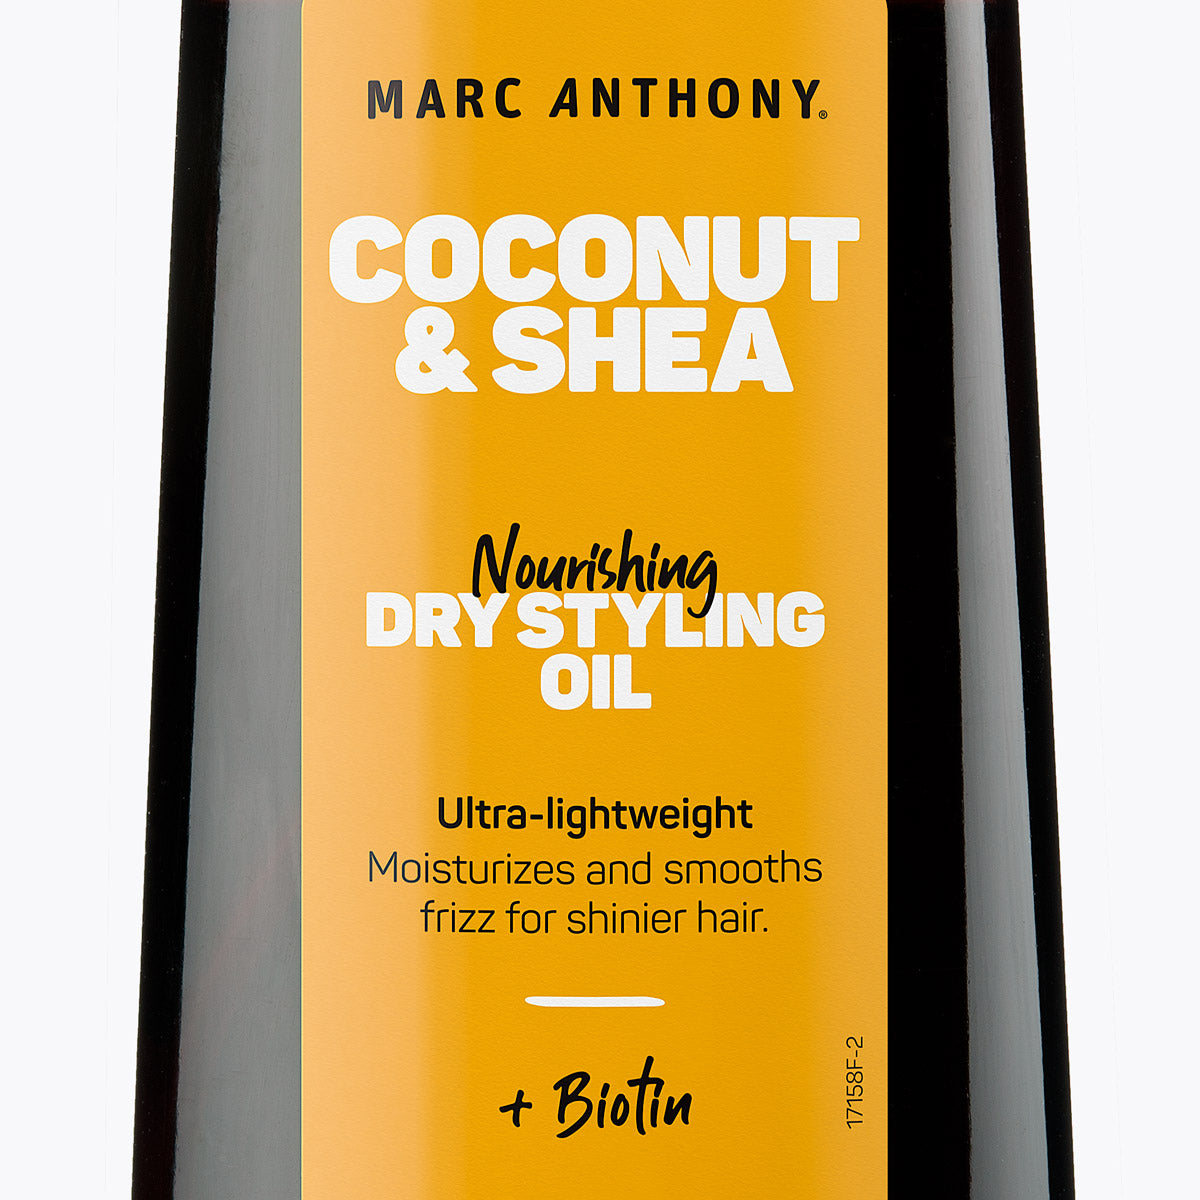 Coconut & Shea <br> Nourishing Dry Styling Oil